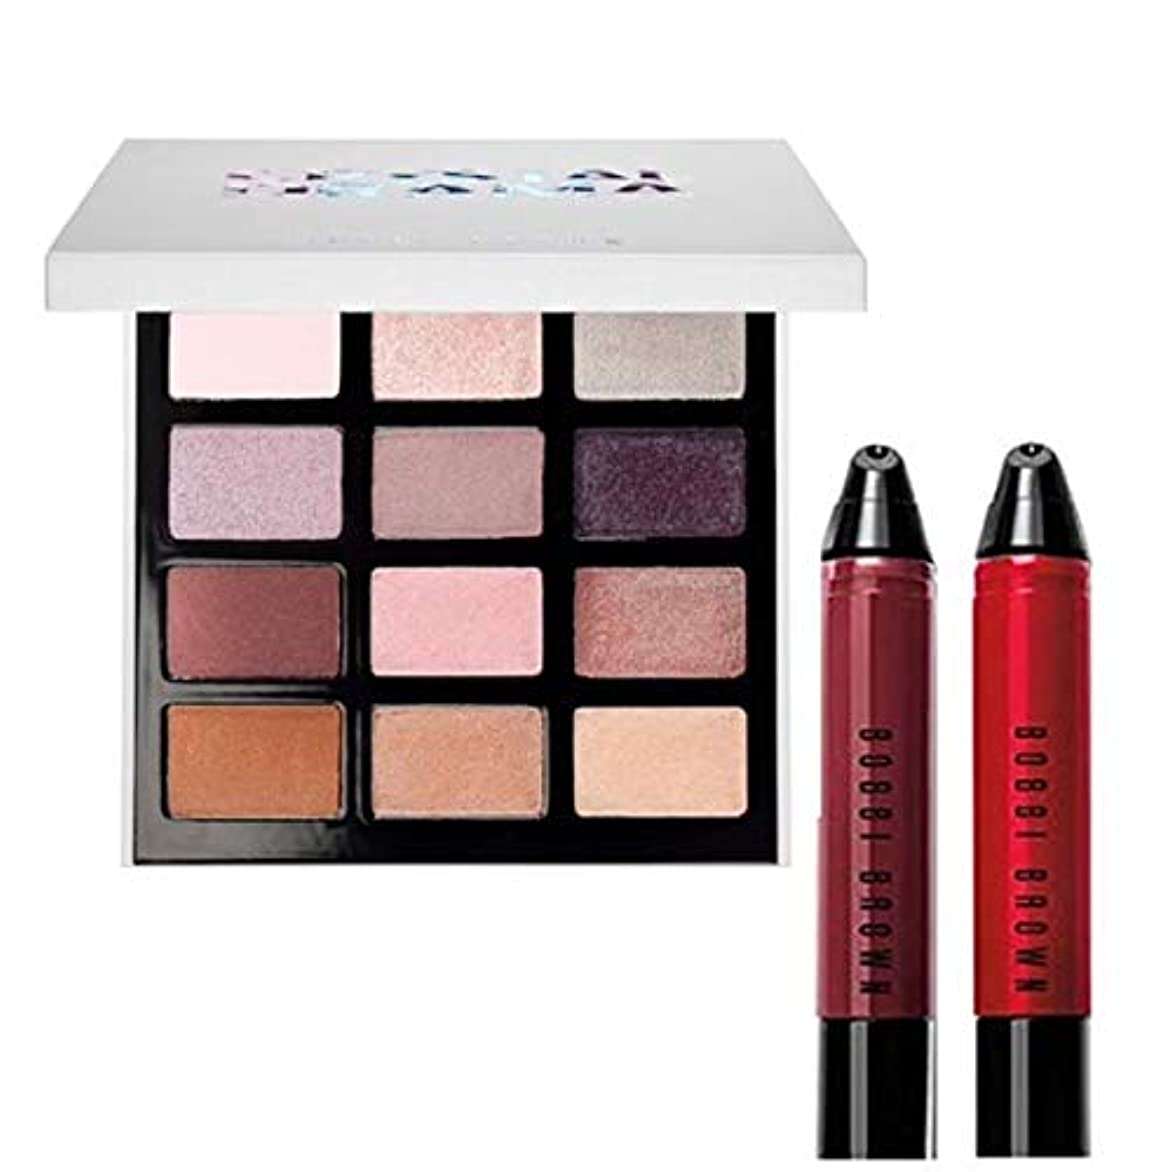 登録する火島Bobbi Brown 限定版,Crystal Drama Eyeshadow Palette & Lip Art Mini Art Stick Liquid Lip 2Set [海外直送品] [並行輸入品]